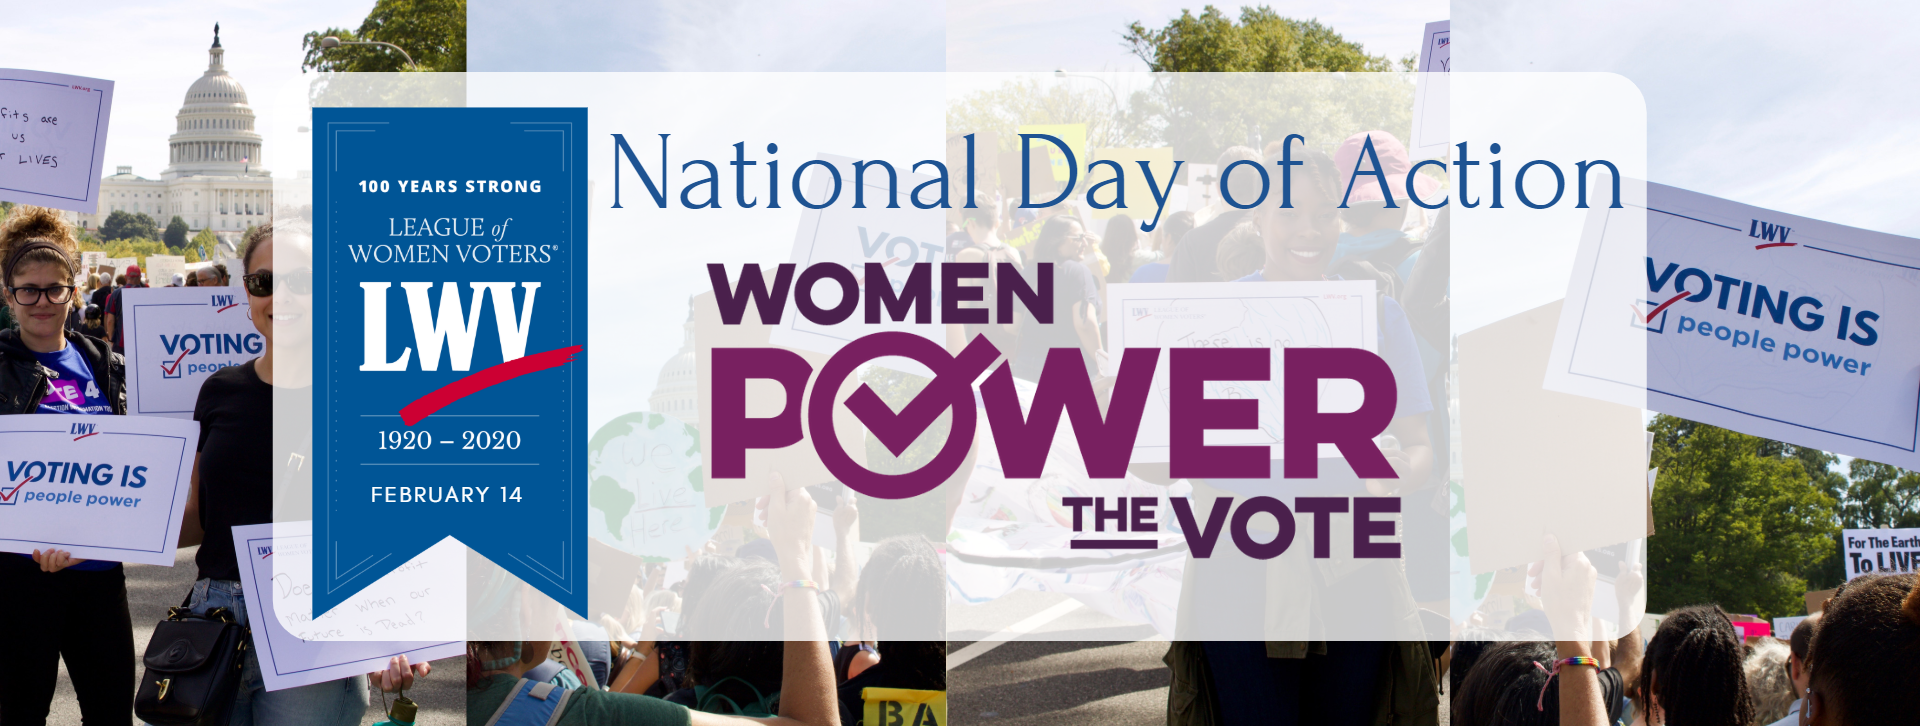 National Day of Action February 14 2020 Women Power the Vote Image